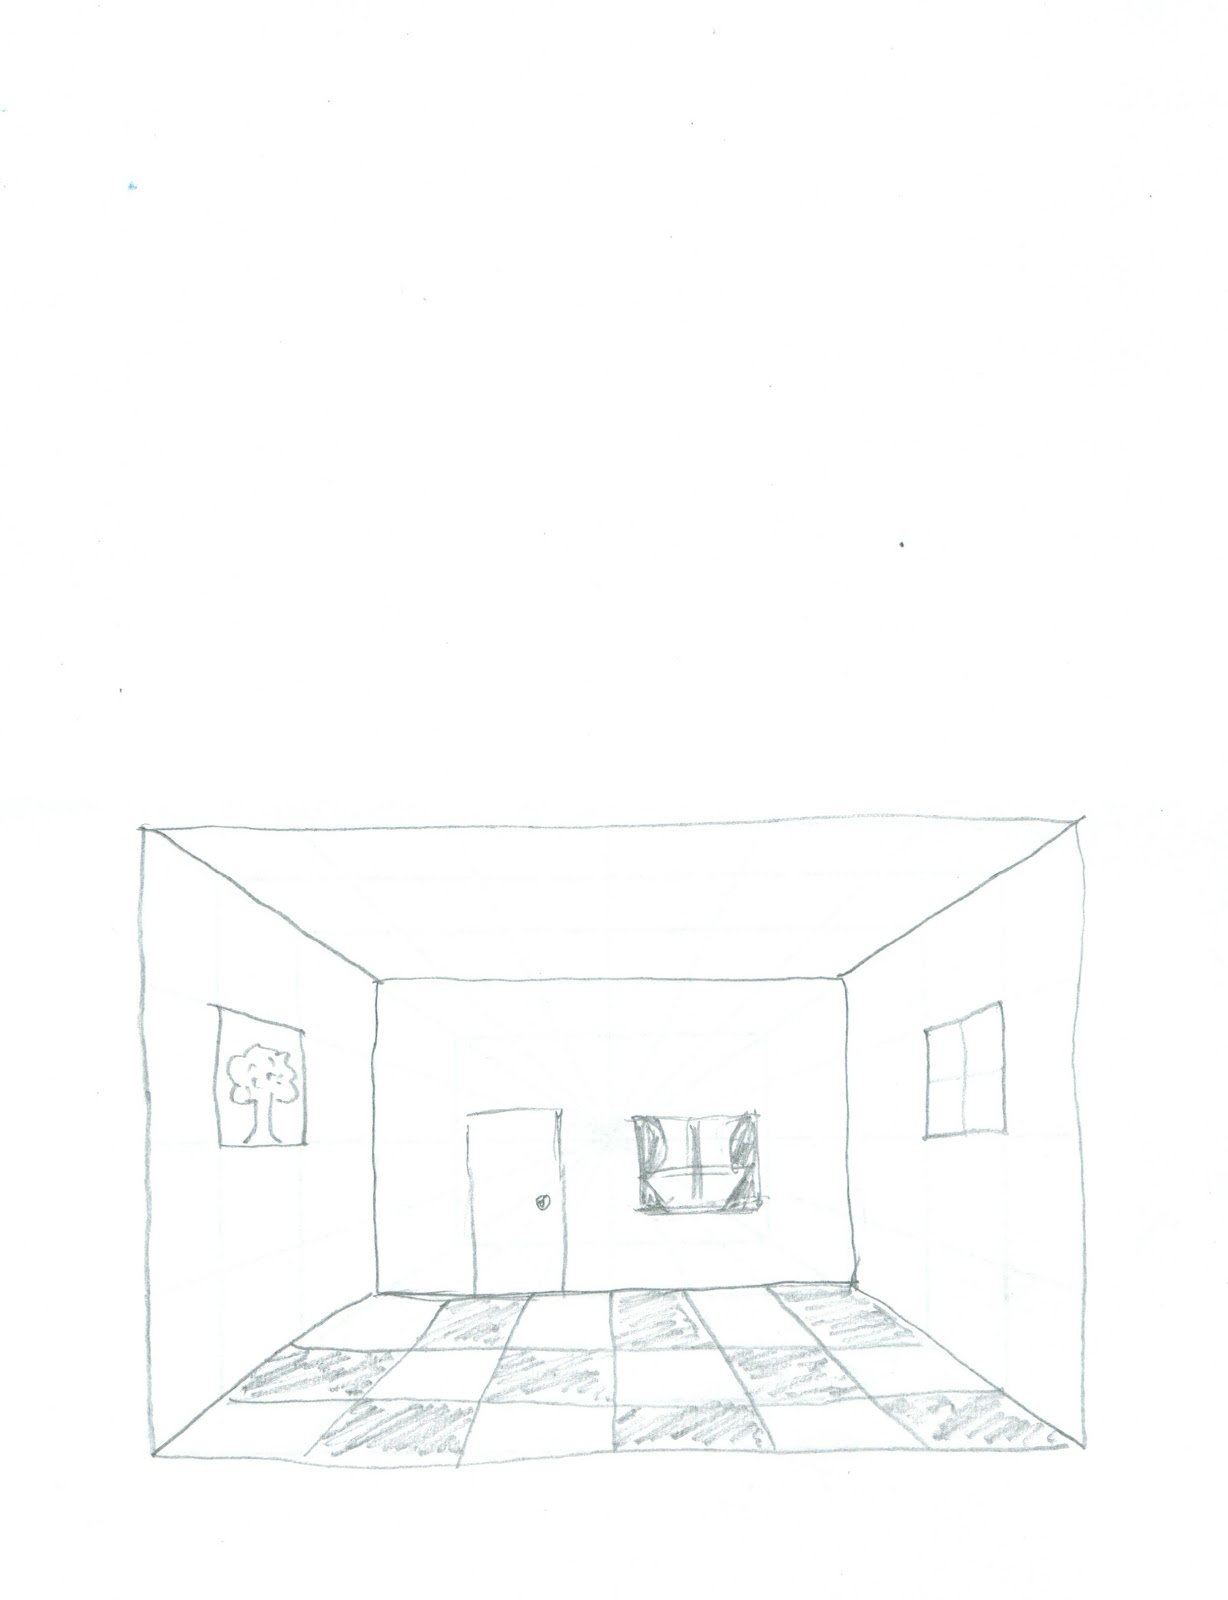 Open door drawing perspective - Basic Drawing Skills Six Weeks Of Lesson Ideas Half A Hundred Acre Wood